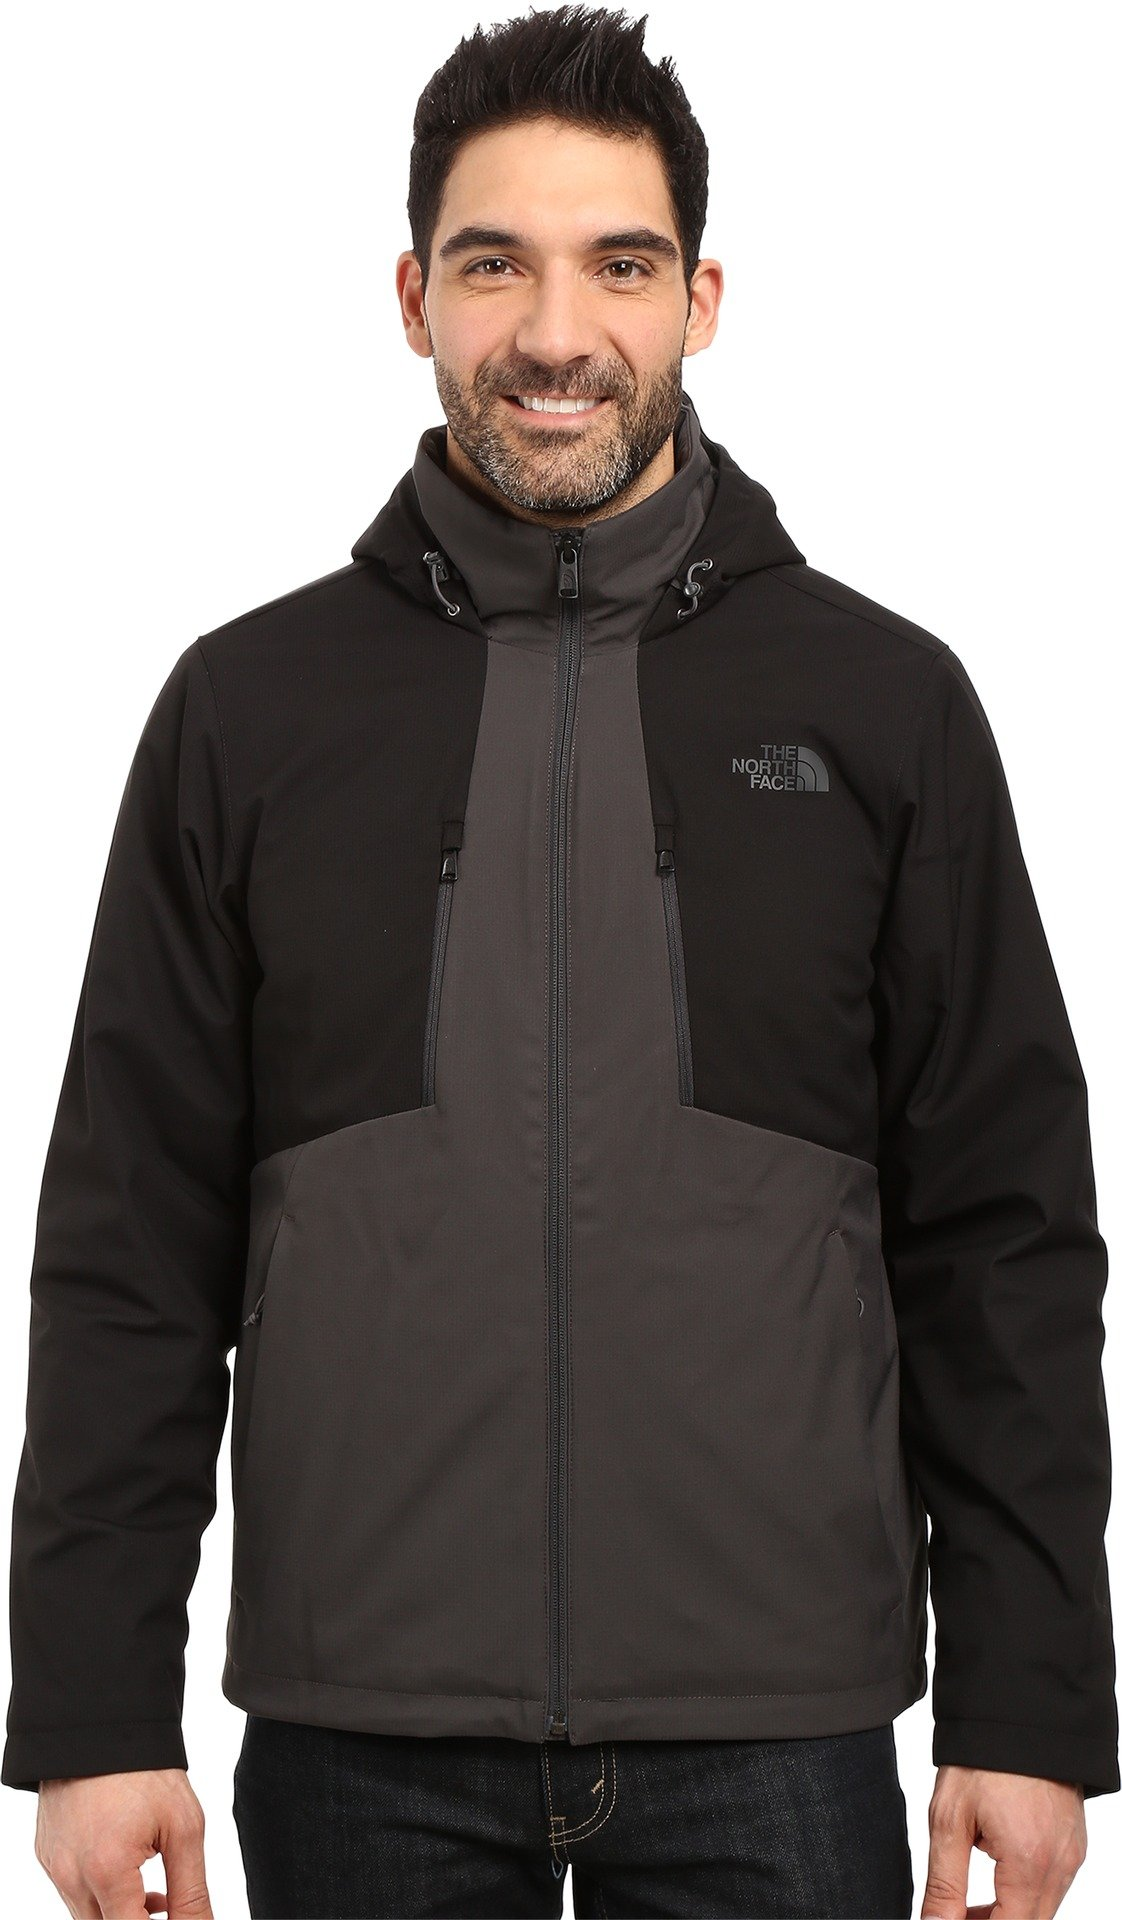 The North Face Men's Apex Elevation Jacket Asphalt Grey/TNF Black (Prior Season) Large by The North Face